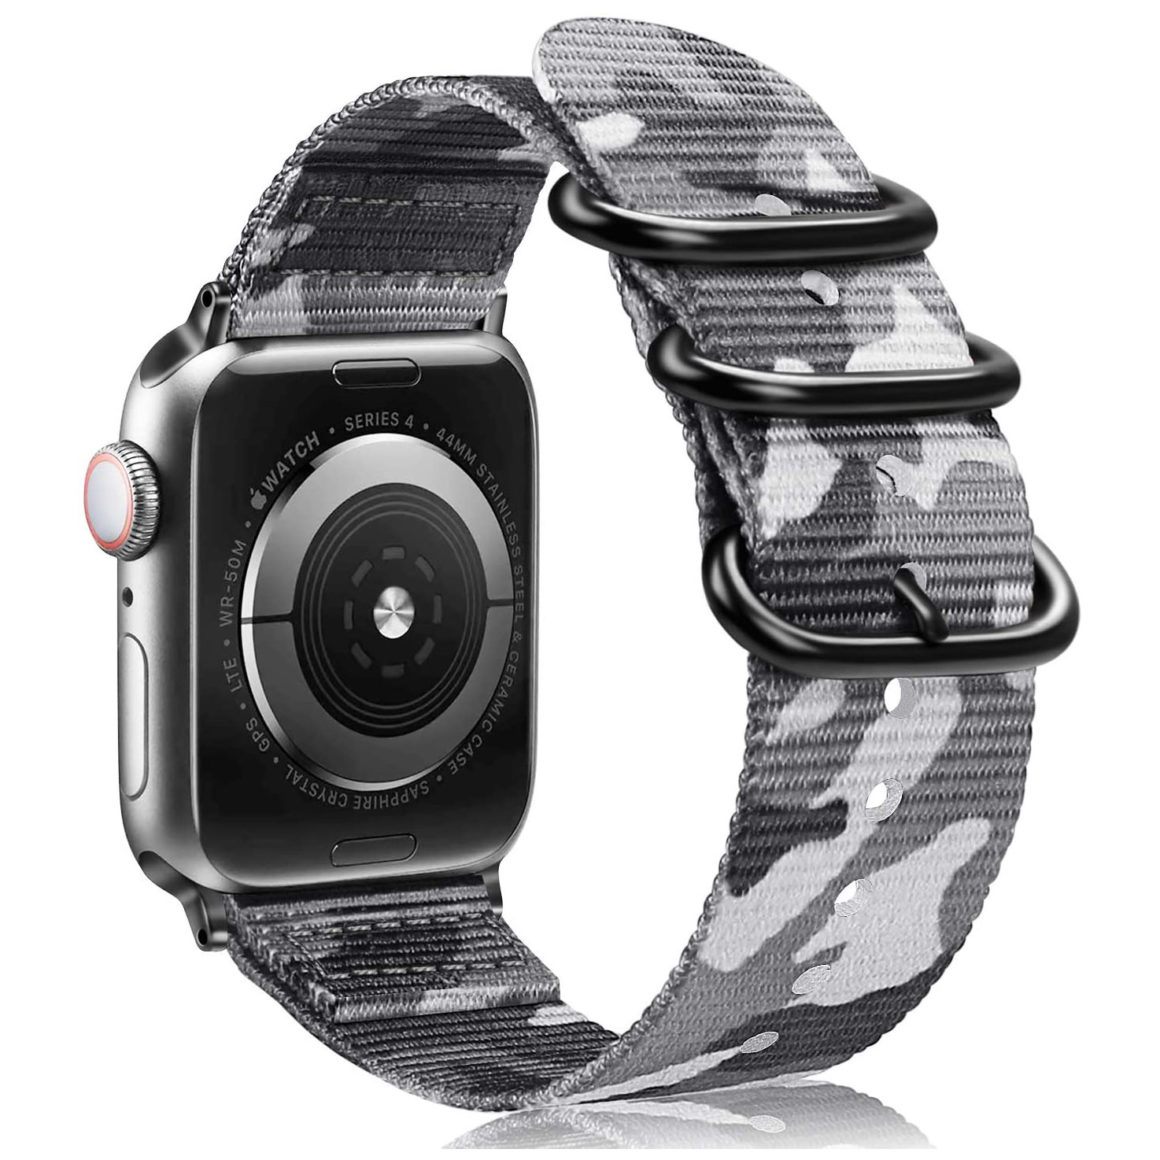 Camouflage Armband für die Apple Watch